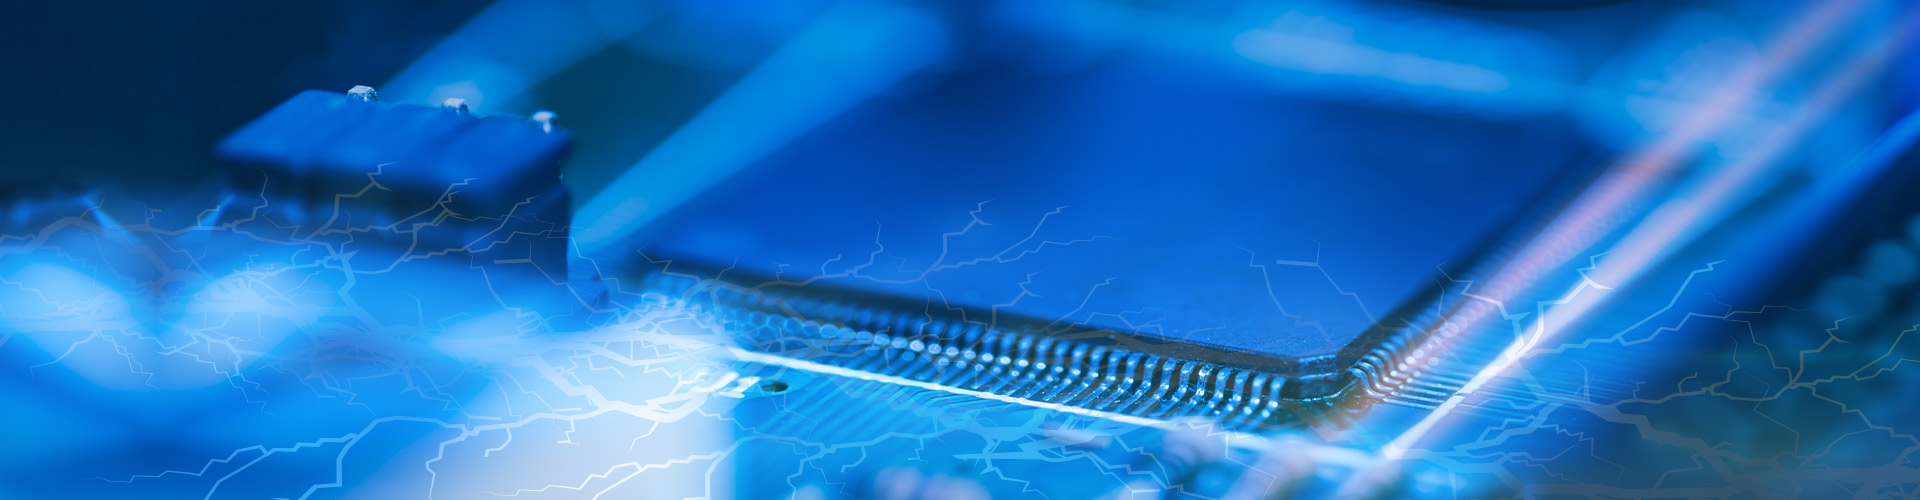 Lightning flashing over blue electronic components on circuit board.